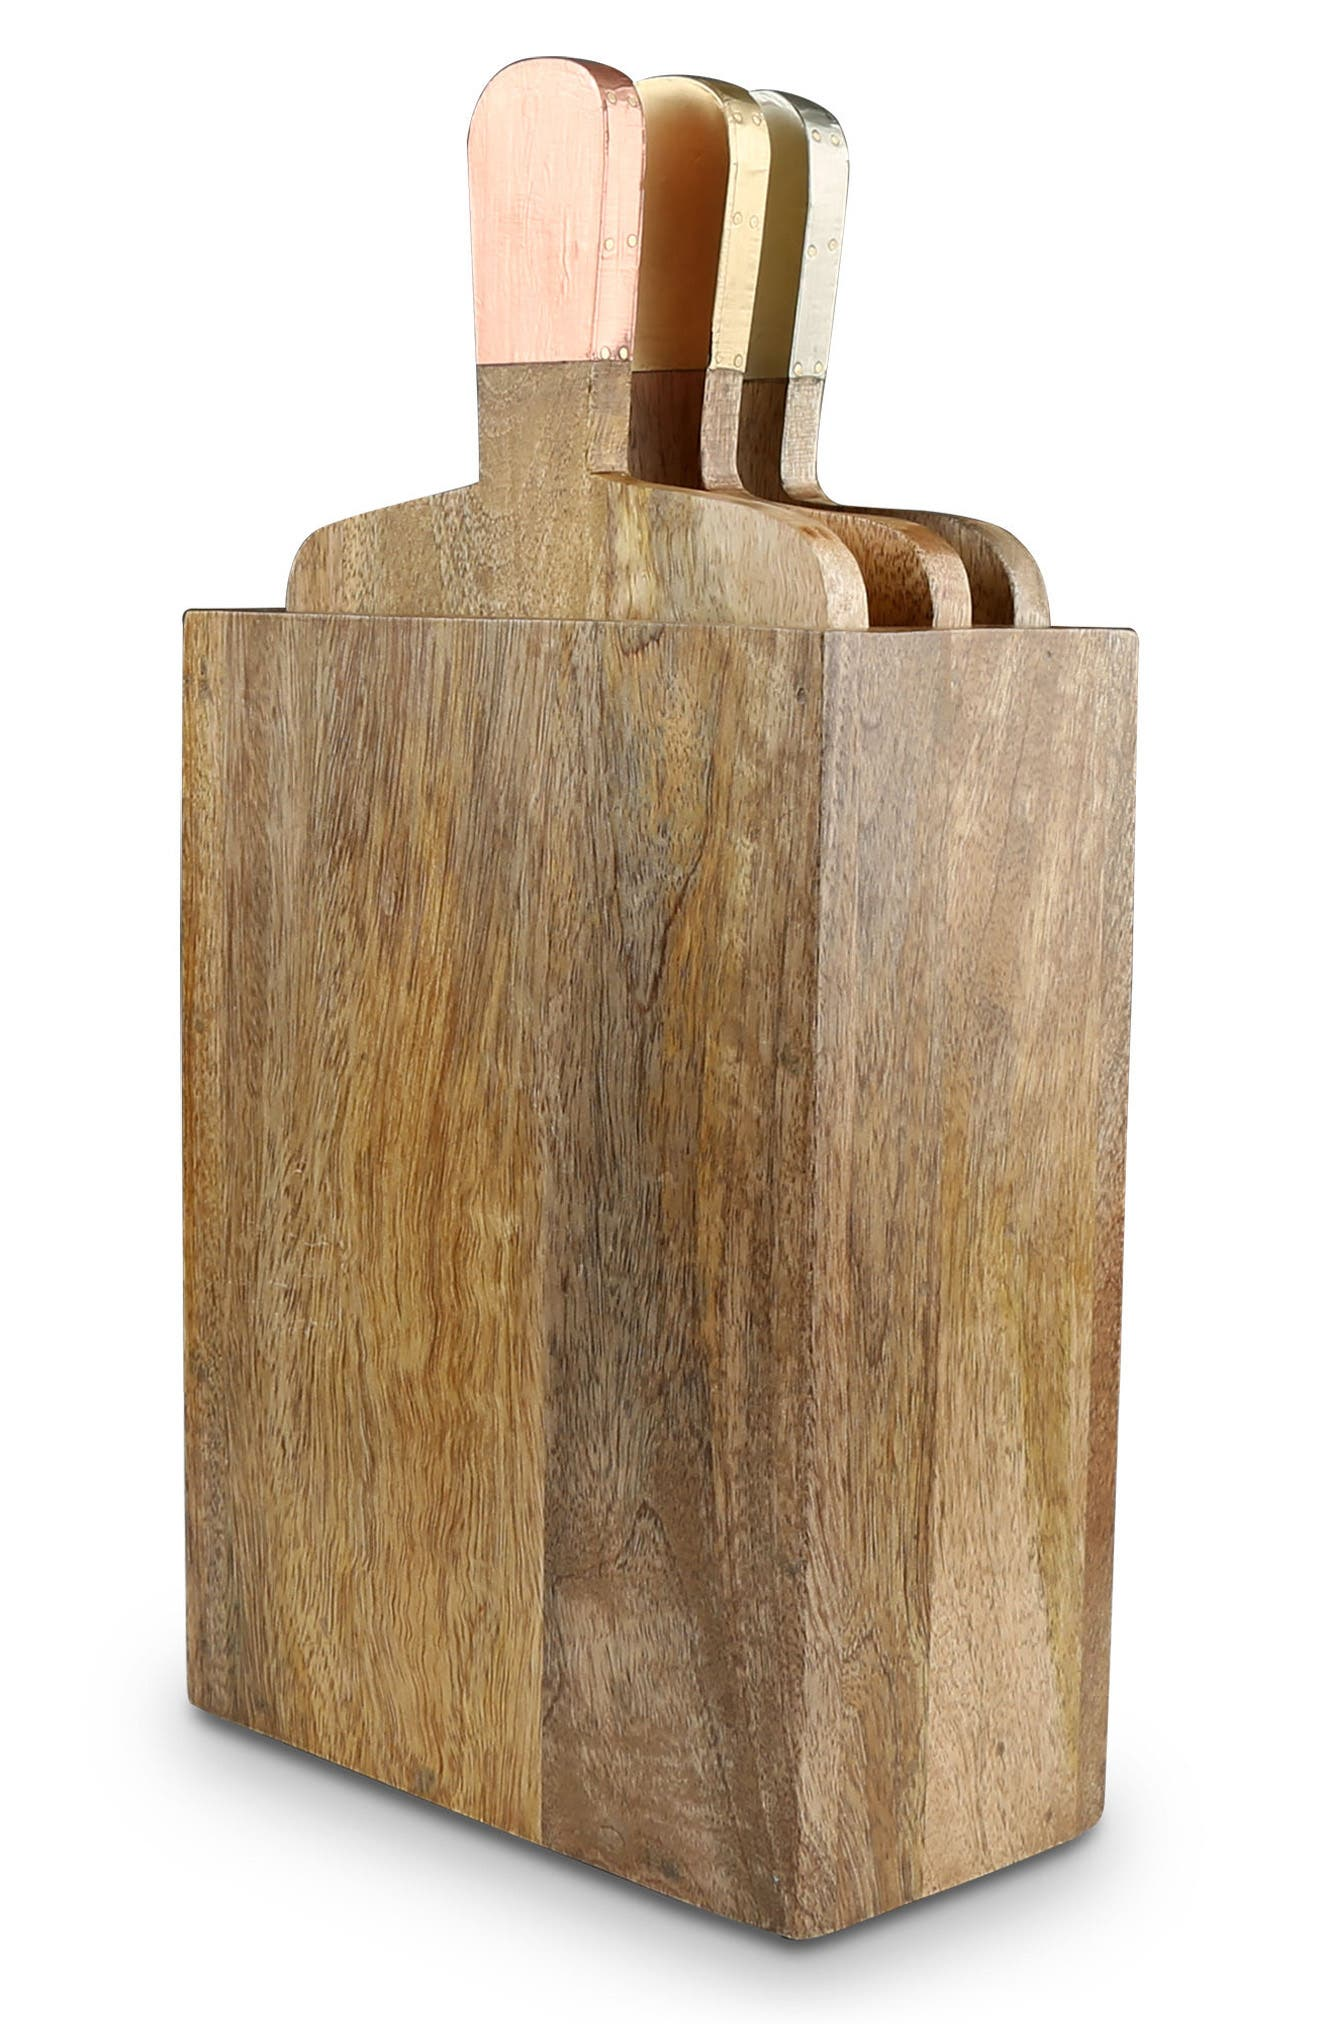 Main Image - Thirstystone Set of 3 Mango Wood Serving Boards & Holder